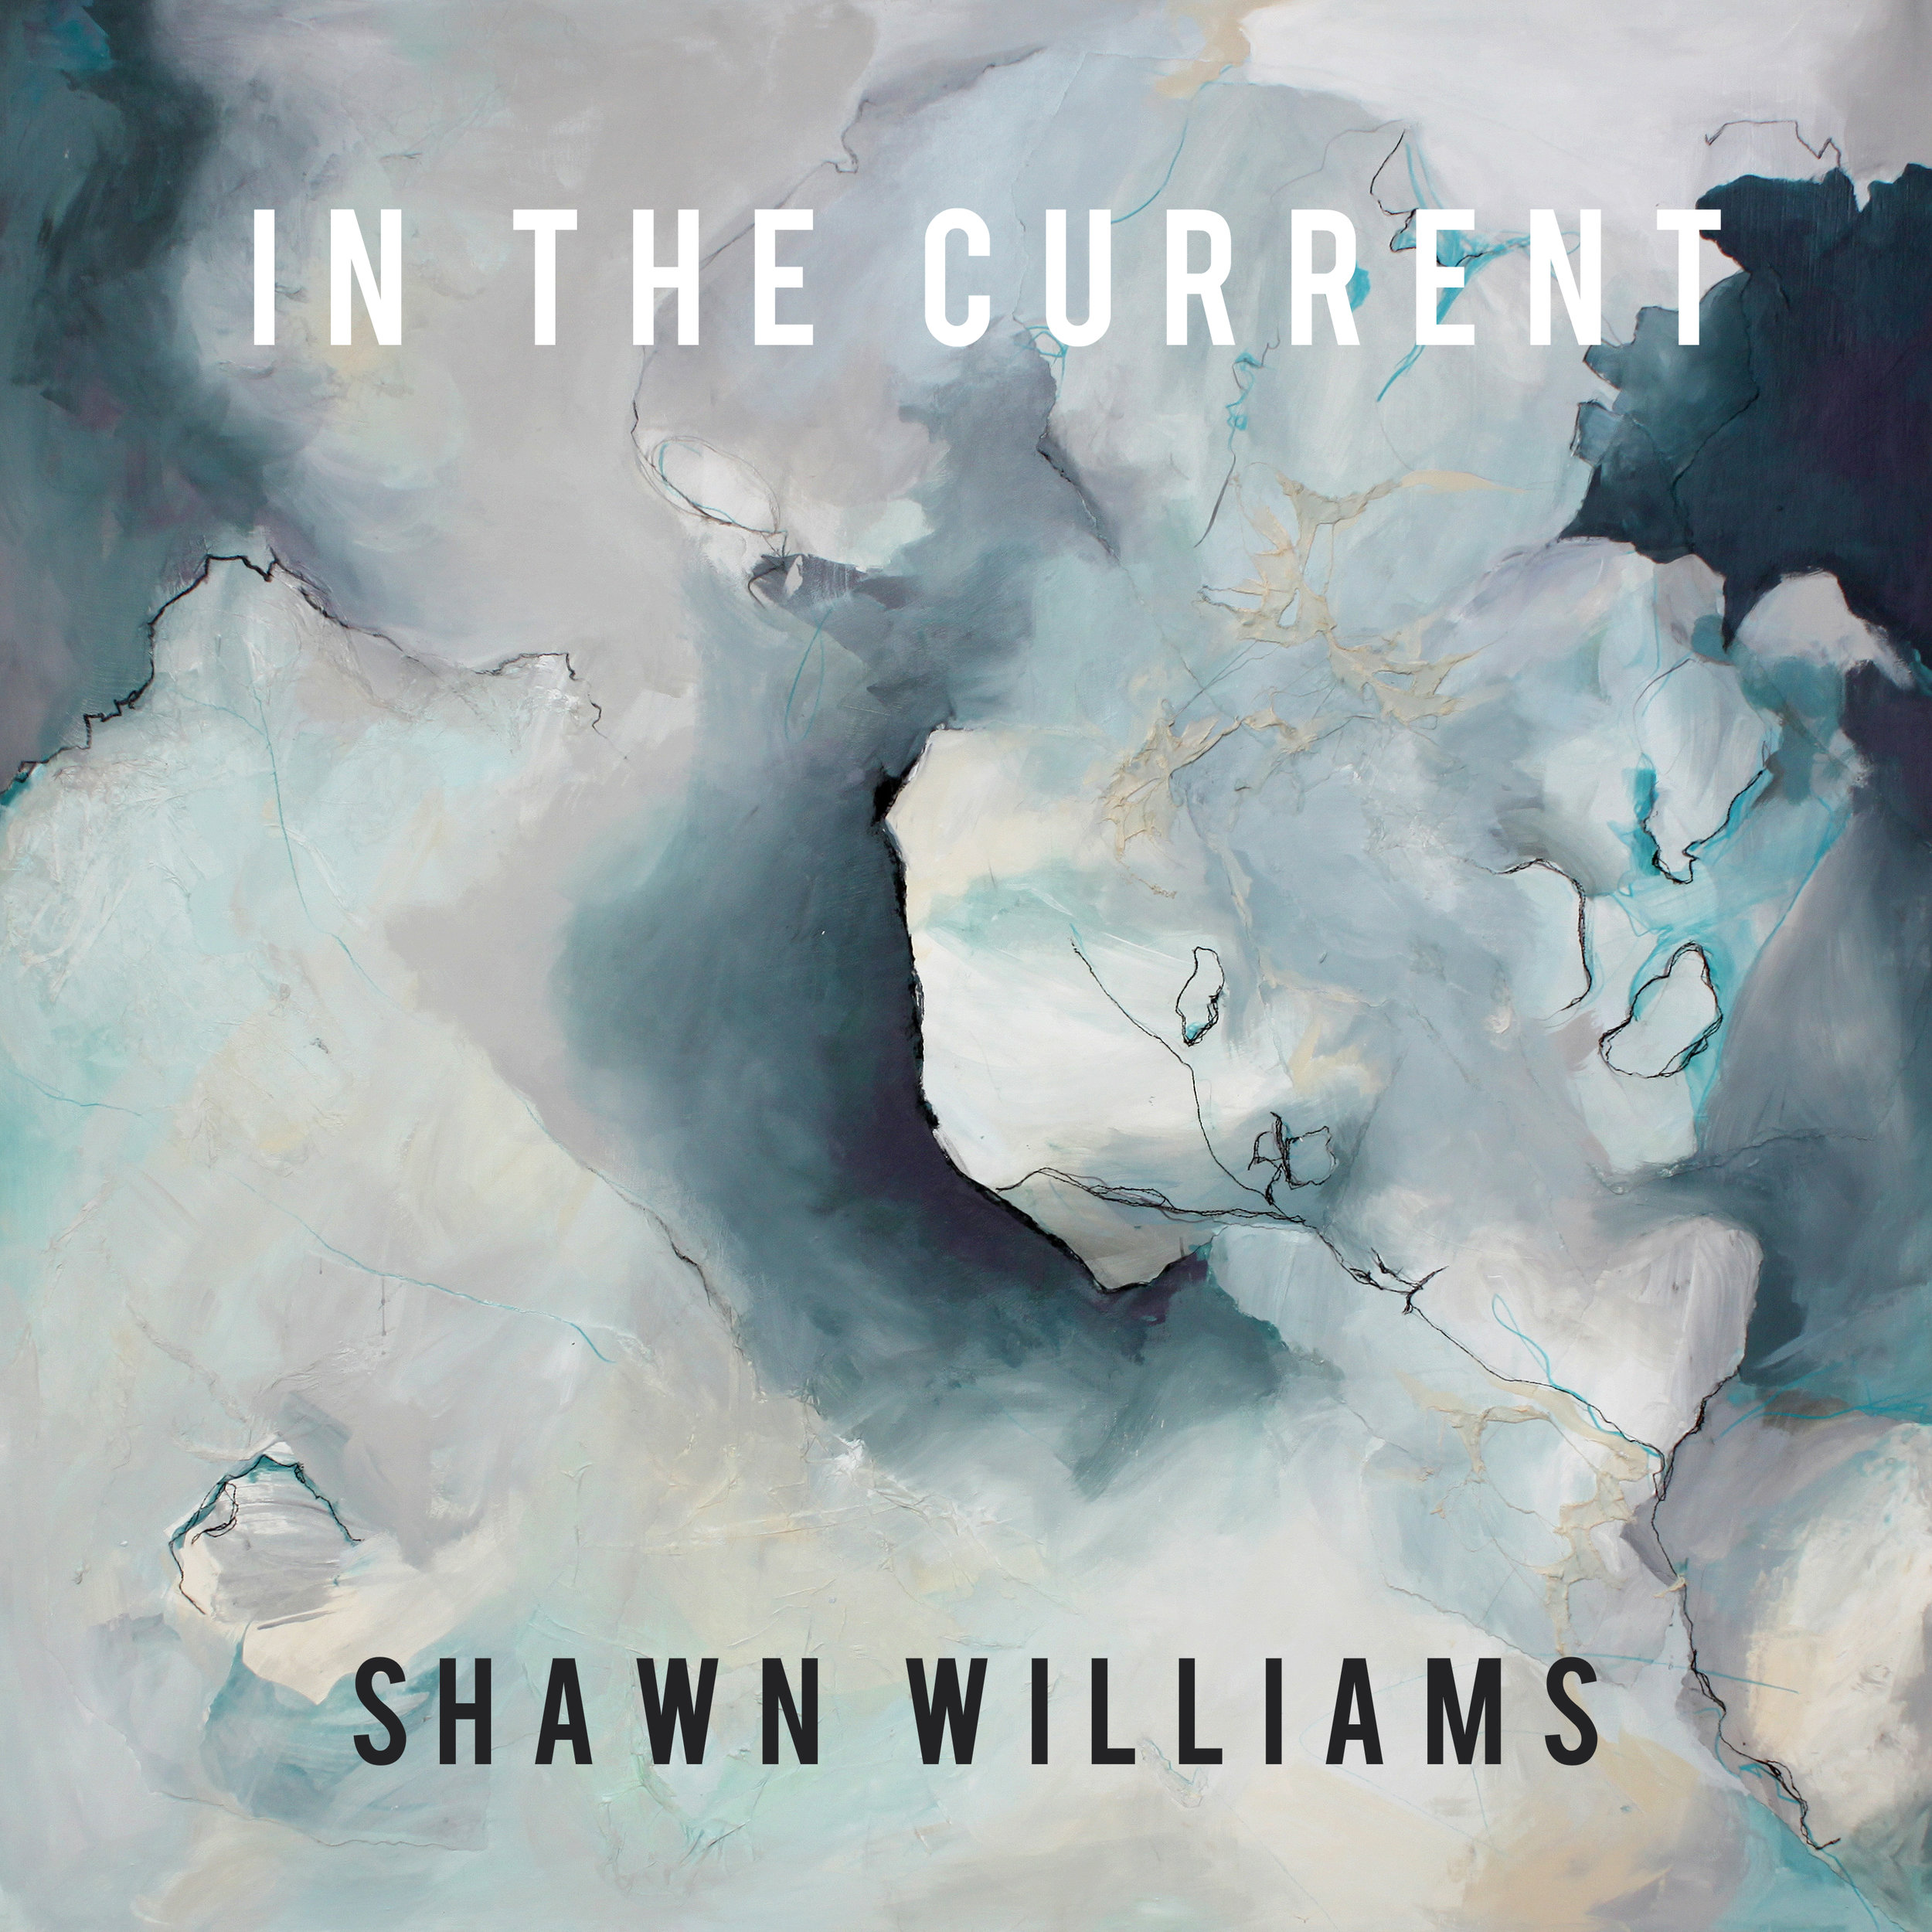 In The Current by Shawn Williams, film composer